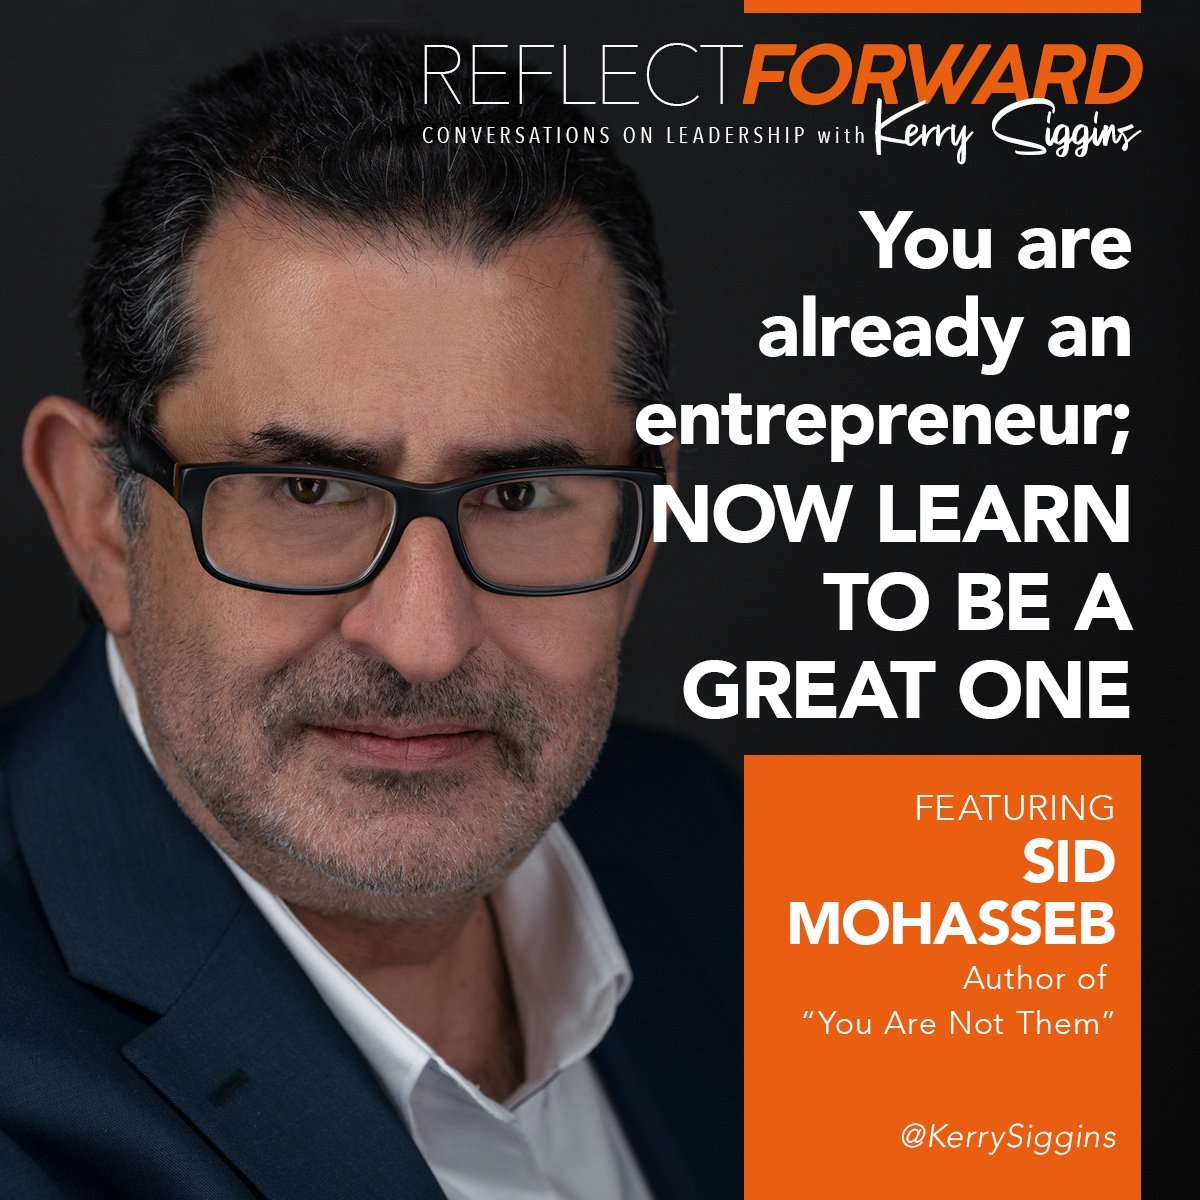 EP 18: You Are Already an Entrepreneur; Now Learn How to Be a Great One w/ Sid Mohasseb